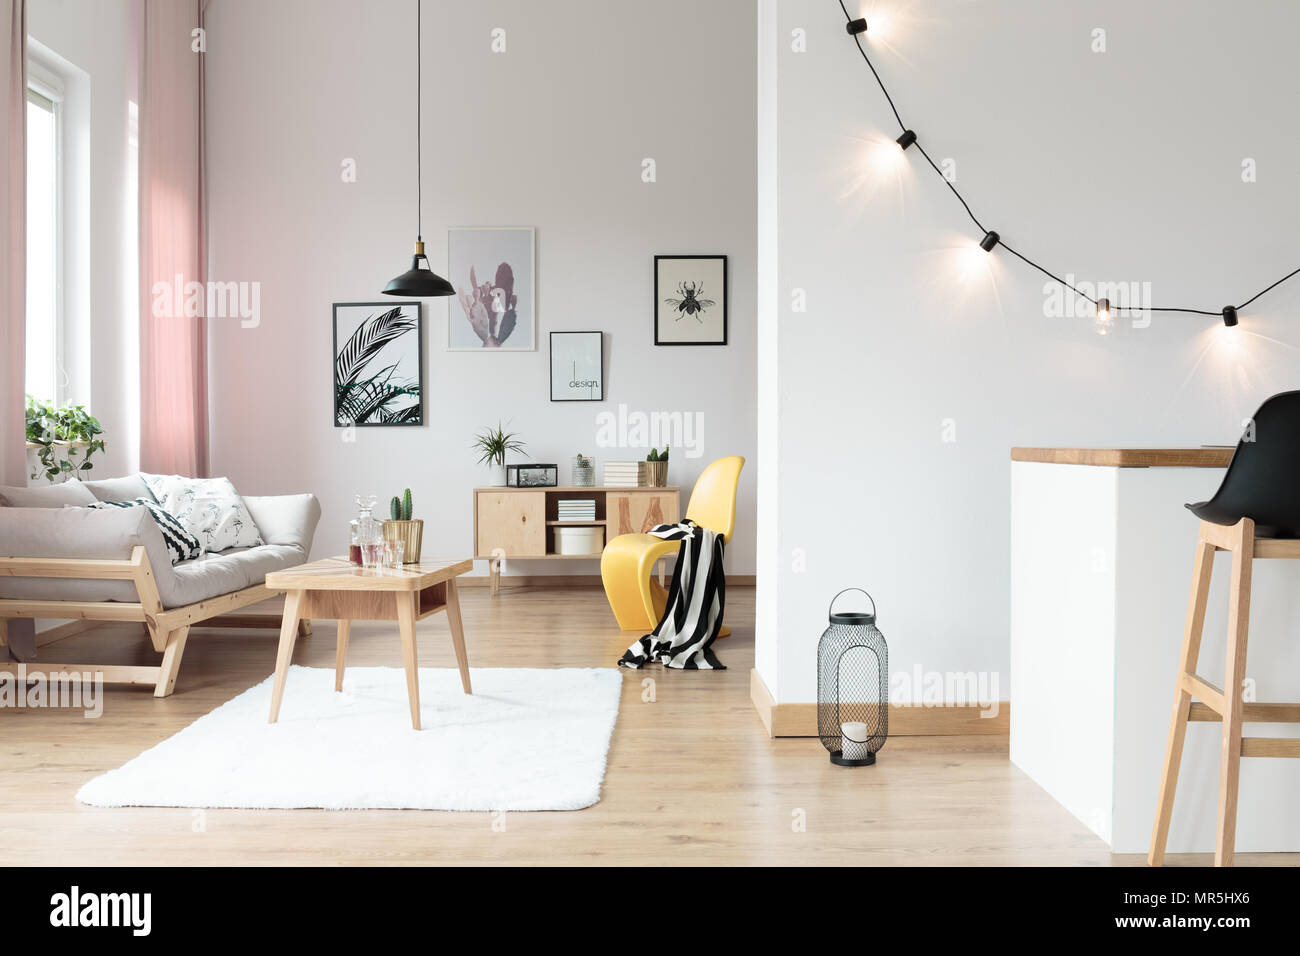 Lighting in bright living room with striped blanket on yellow chair ...